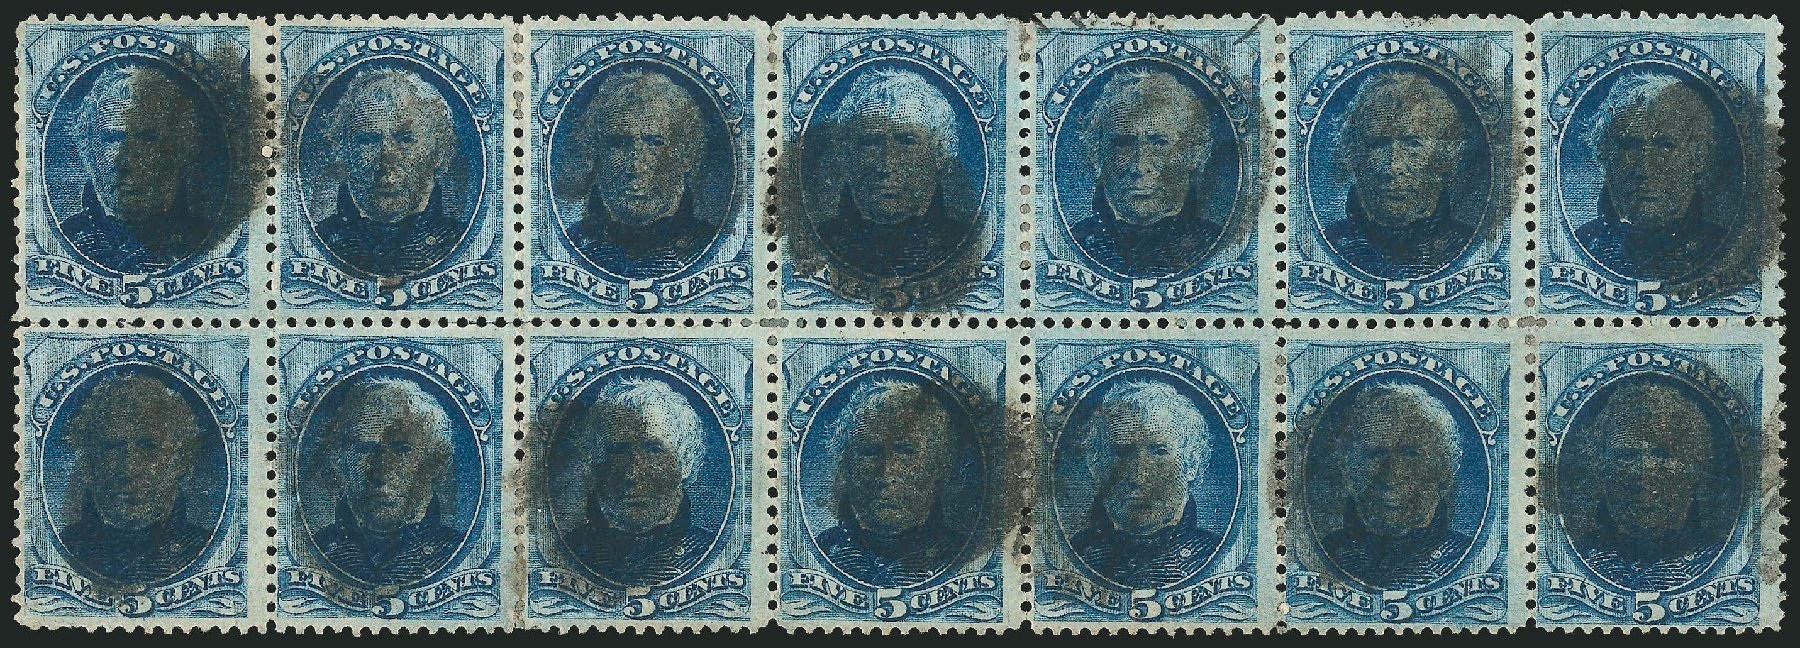 US Stamp Prices Scott Catalogue #185: 5c 1879 Taylor. Robert Siegel Auction Galleries, Nov 2014, Sale 1084, Lot 3448